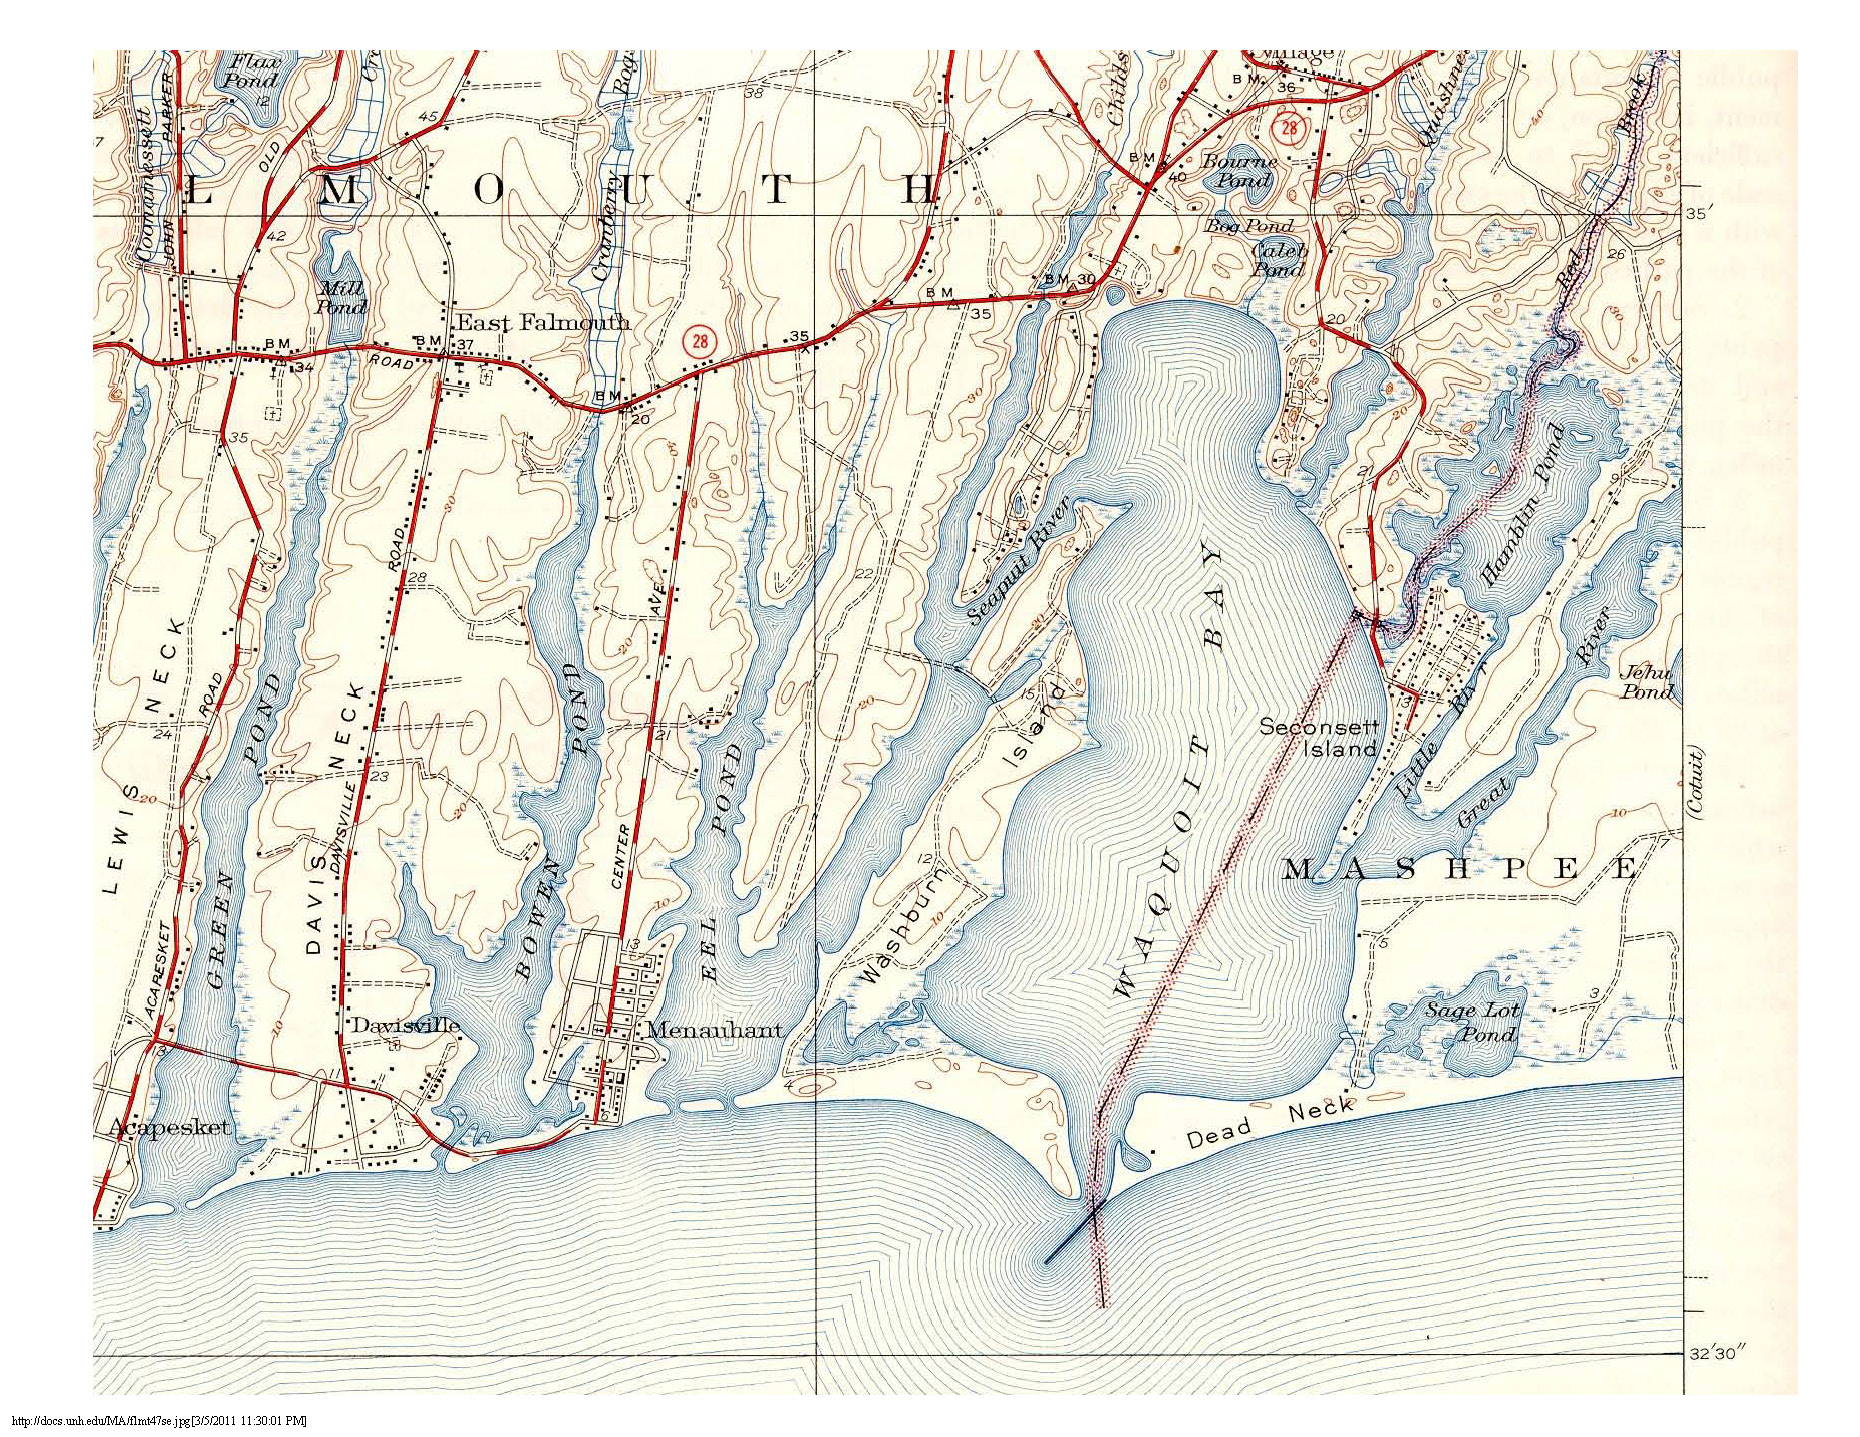 Map from 1941 depicting Waquoit Bay, Washburn Island and the peninsulas while the area was used as a military base called Camp Washburn. At this time you can see a bridge connecting what is now Seacoast Shores to Washburn Island.